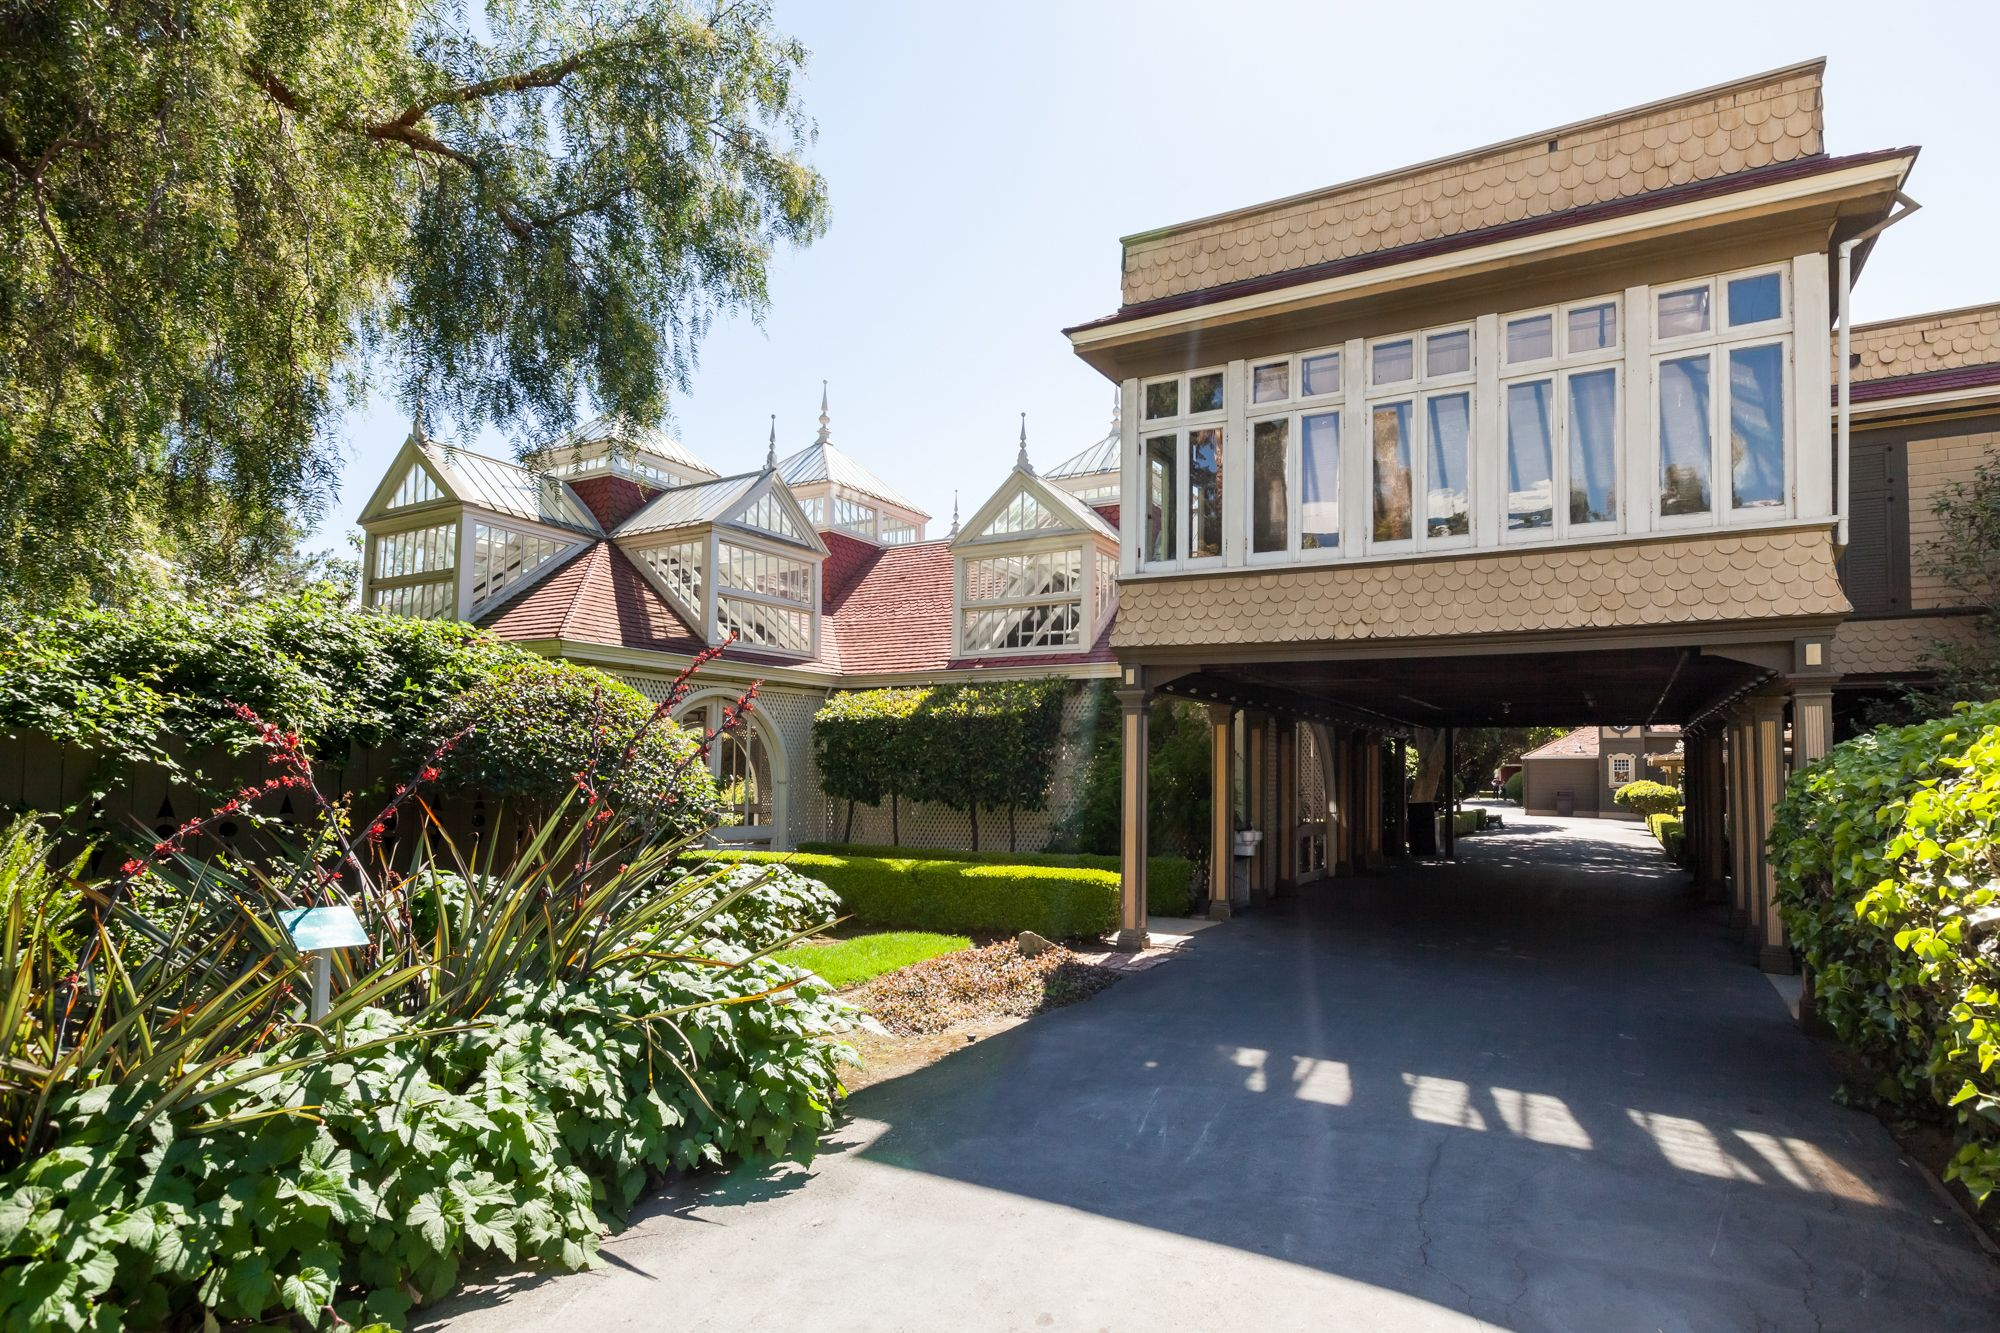 winchester mystery house a home built by guns and guilt